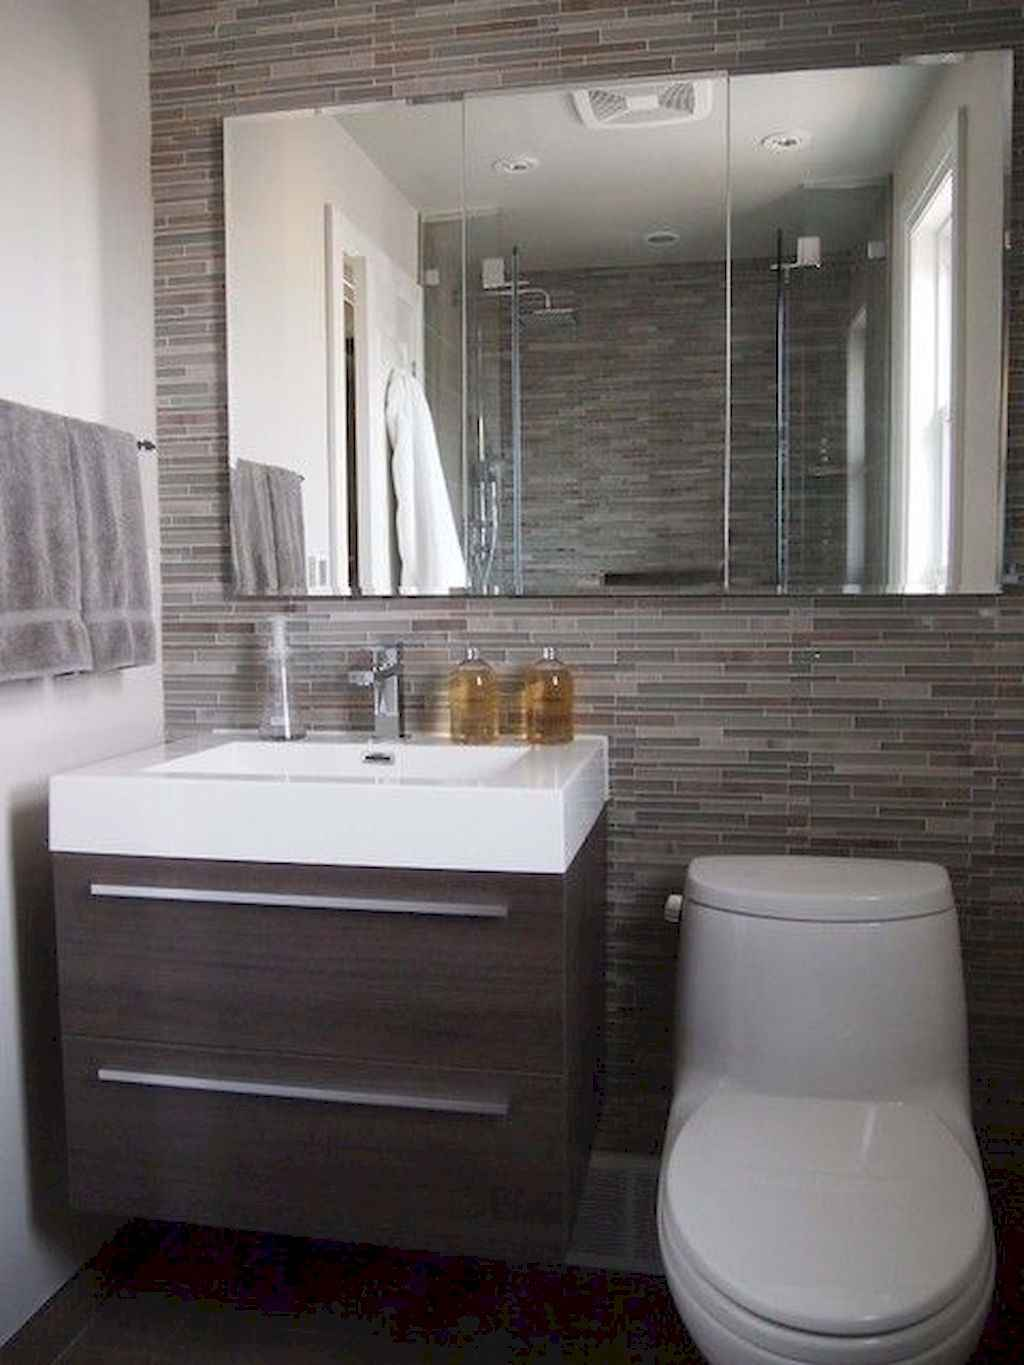 111 awesome small bathroom remodel ideas on a budget (78)